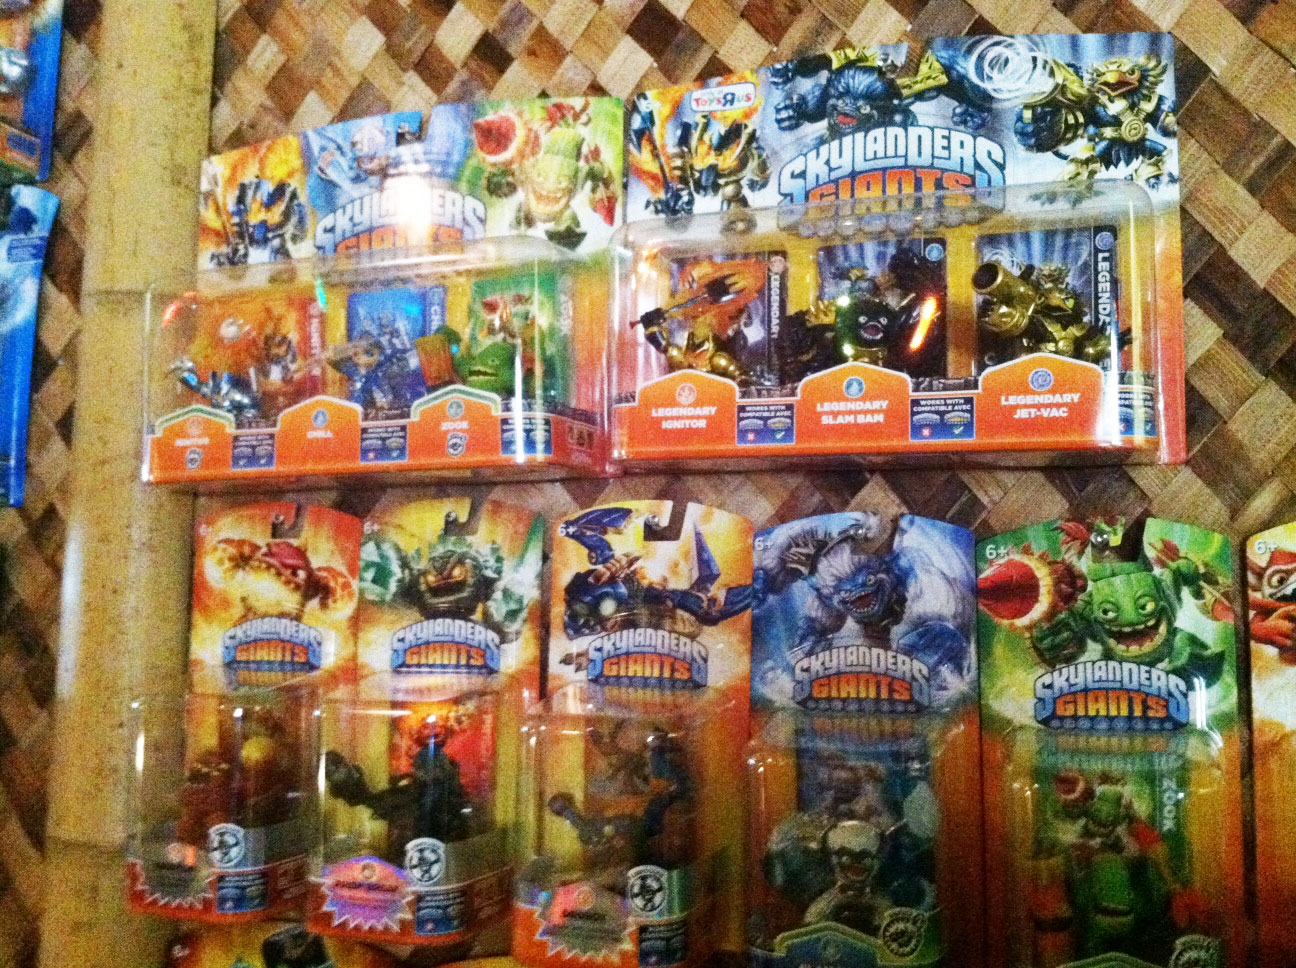 Skylanders Giants Preview: Impressions, Images, Prototypes and More